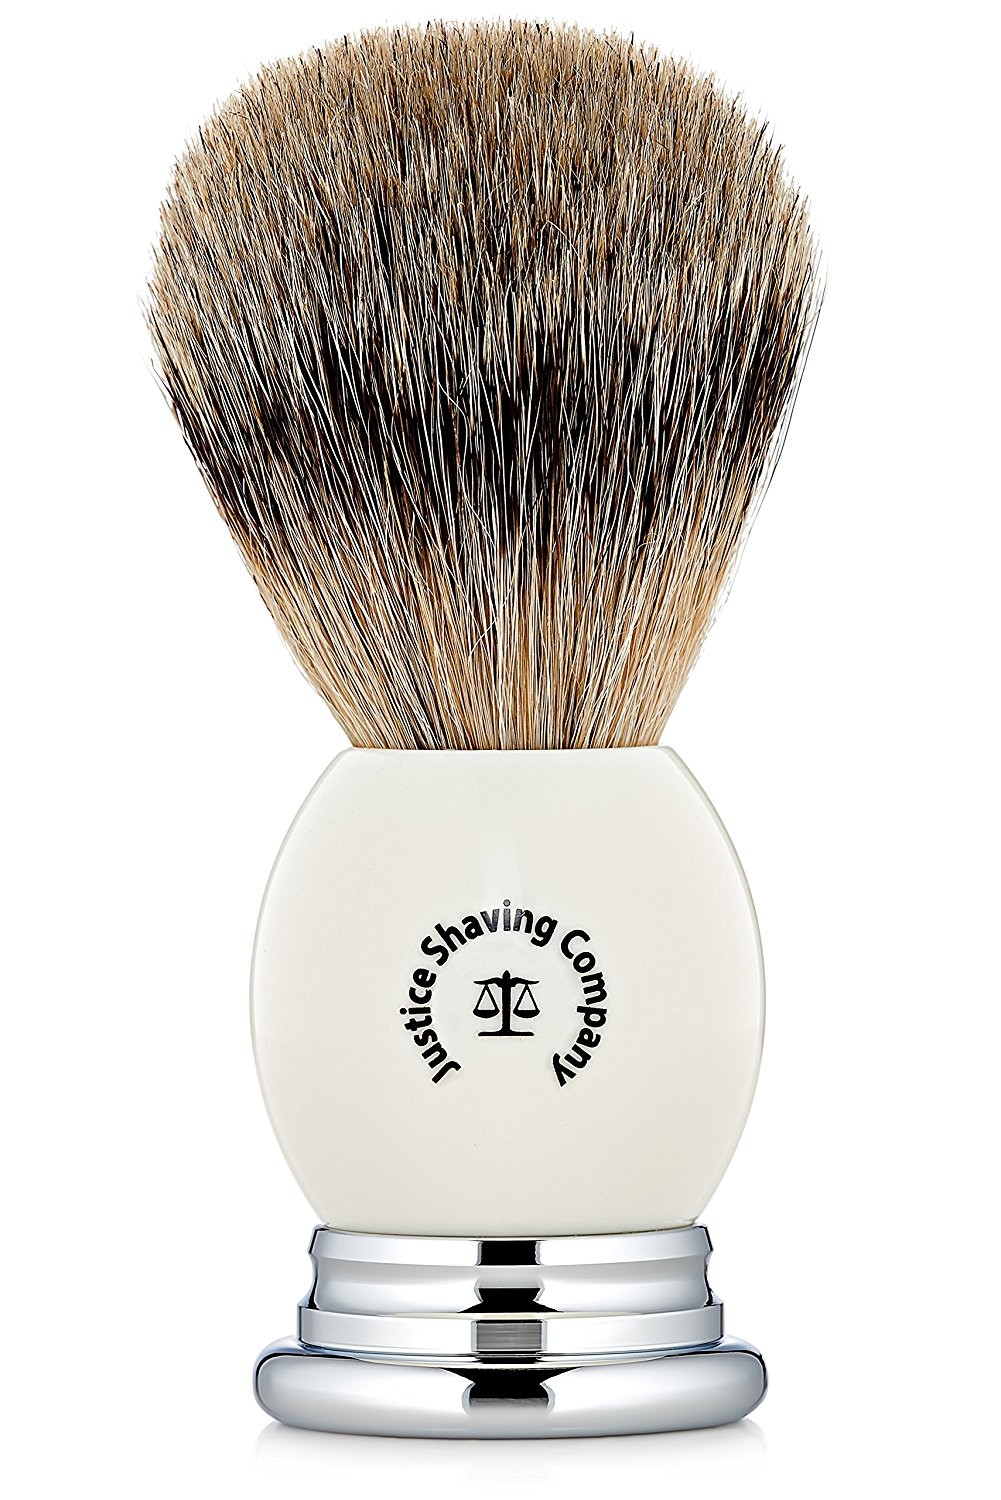 Justice Shaving Company's Super Badger Hair Shaving Brush with White Handle - Have a Premium Super Badger Brush Shave Experience - a Great Foundation for Your Wet Shaving Kit